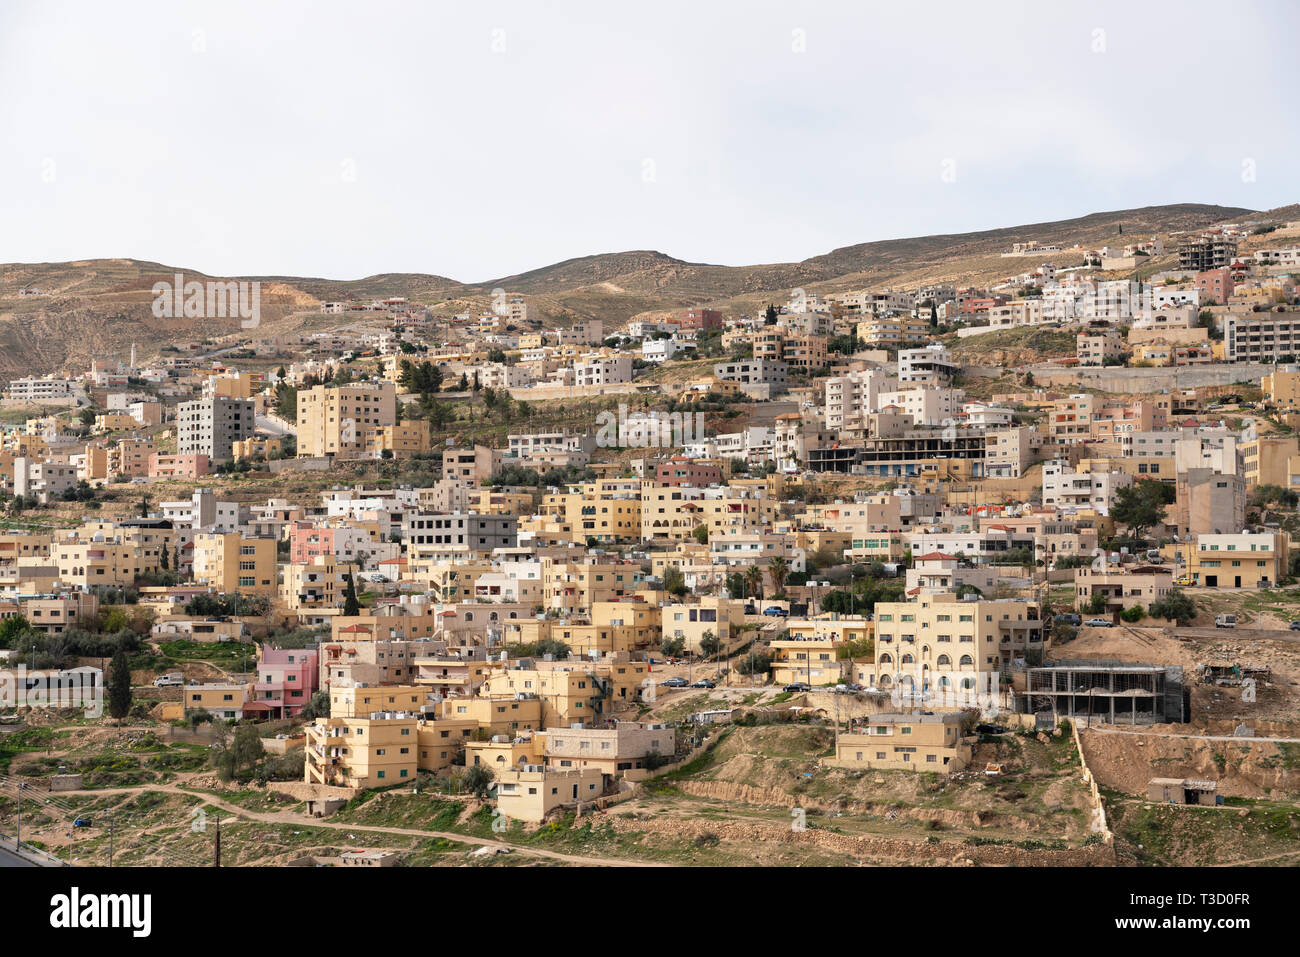 View of housing in town of Wadi Musa ( Petra) in Jordan, Middle East - Stock Image